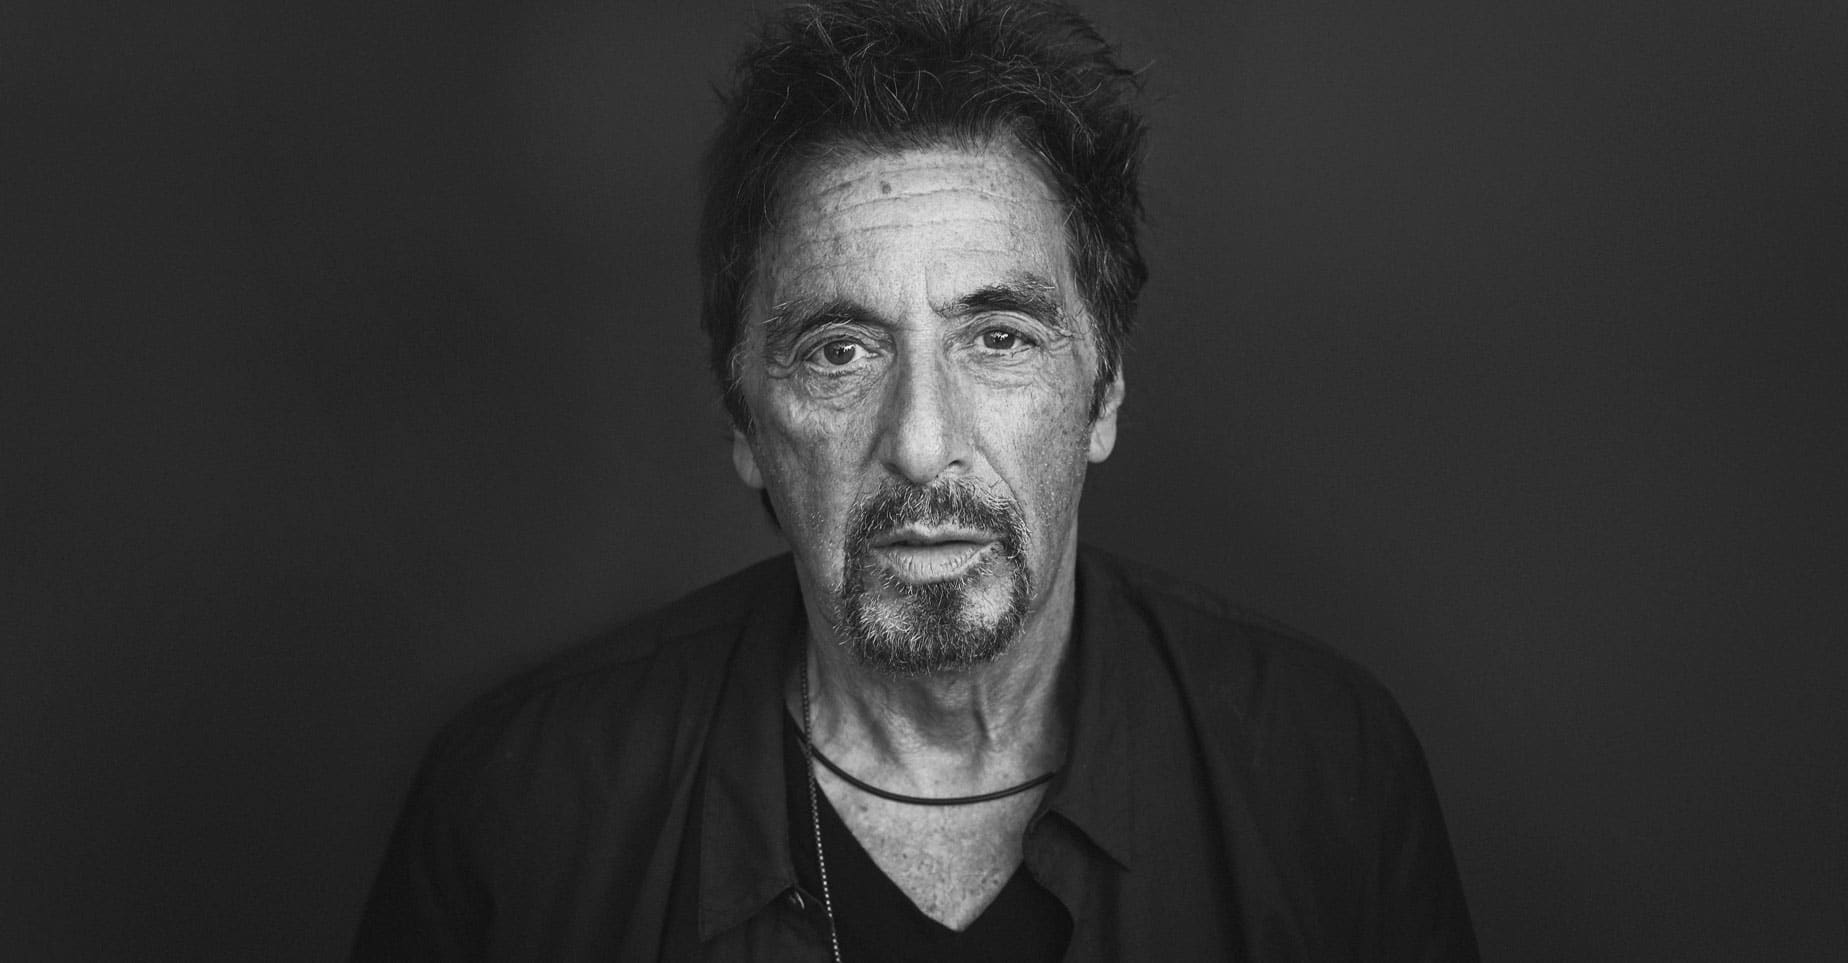 Al Pacino American Actor, Filmmaker, Screenwriter